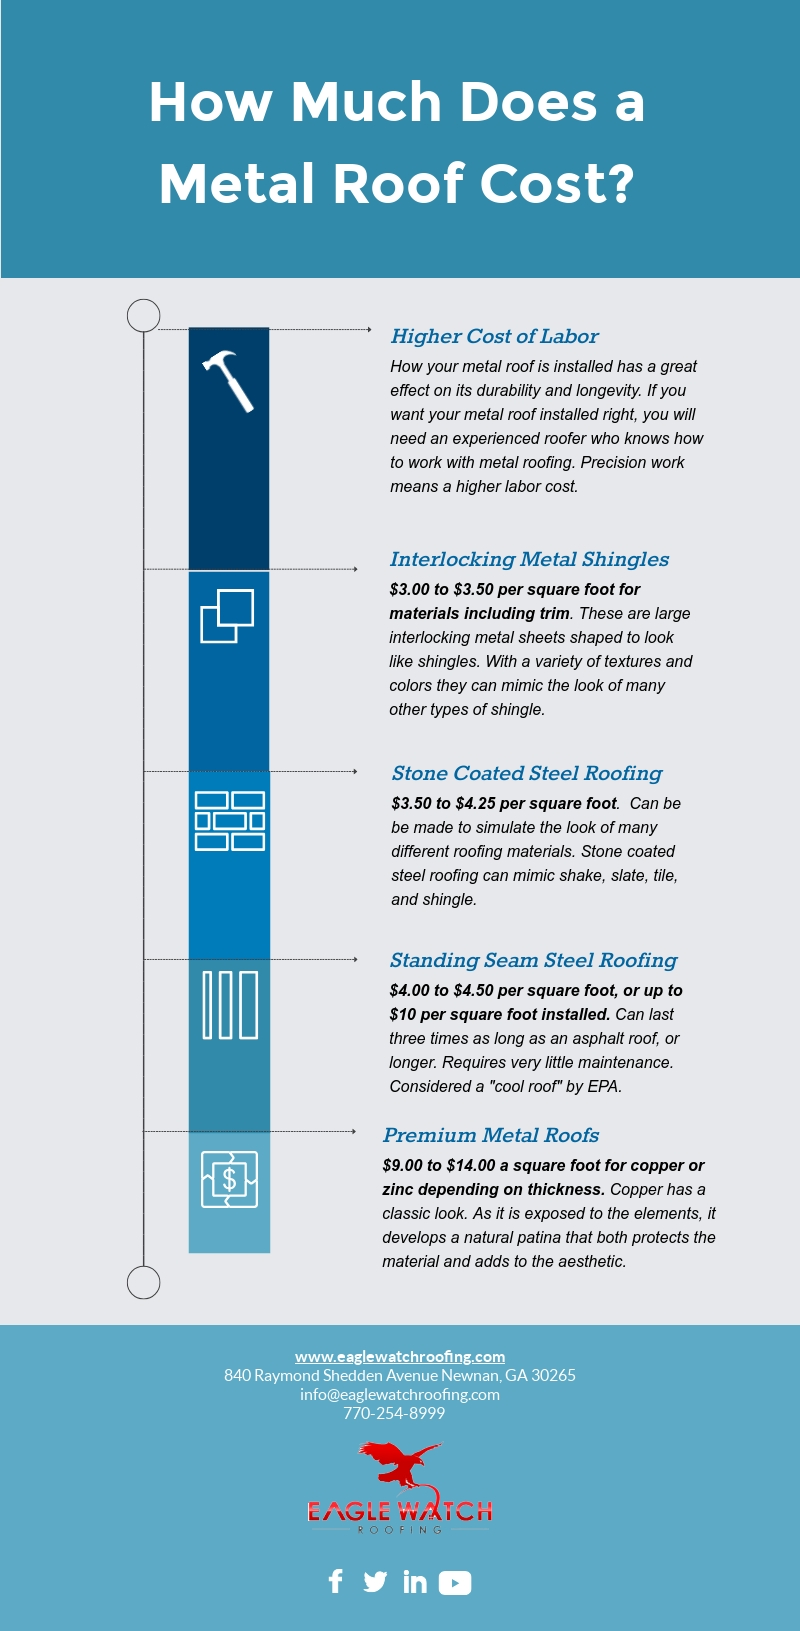 How Much Does A Metal Roof Cost [infographic]